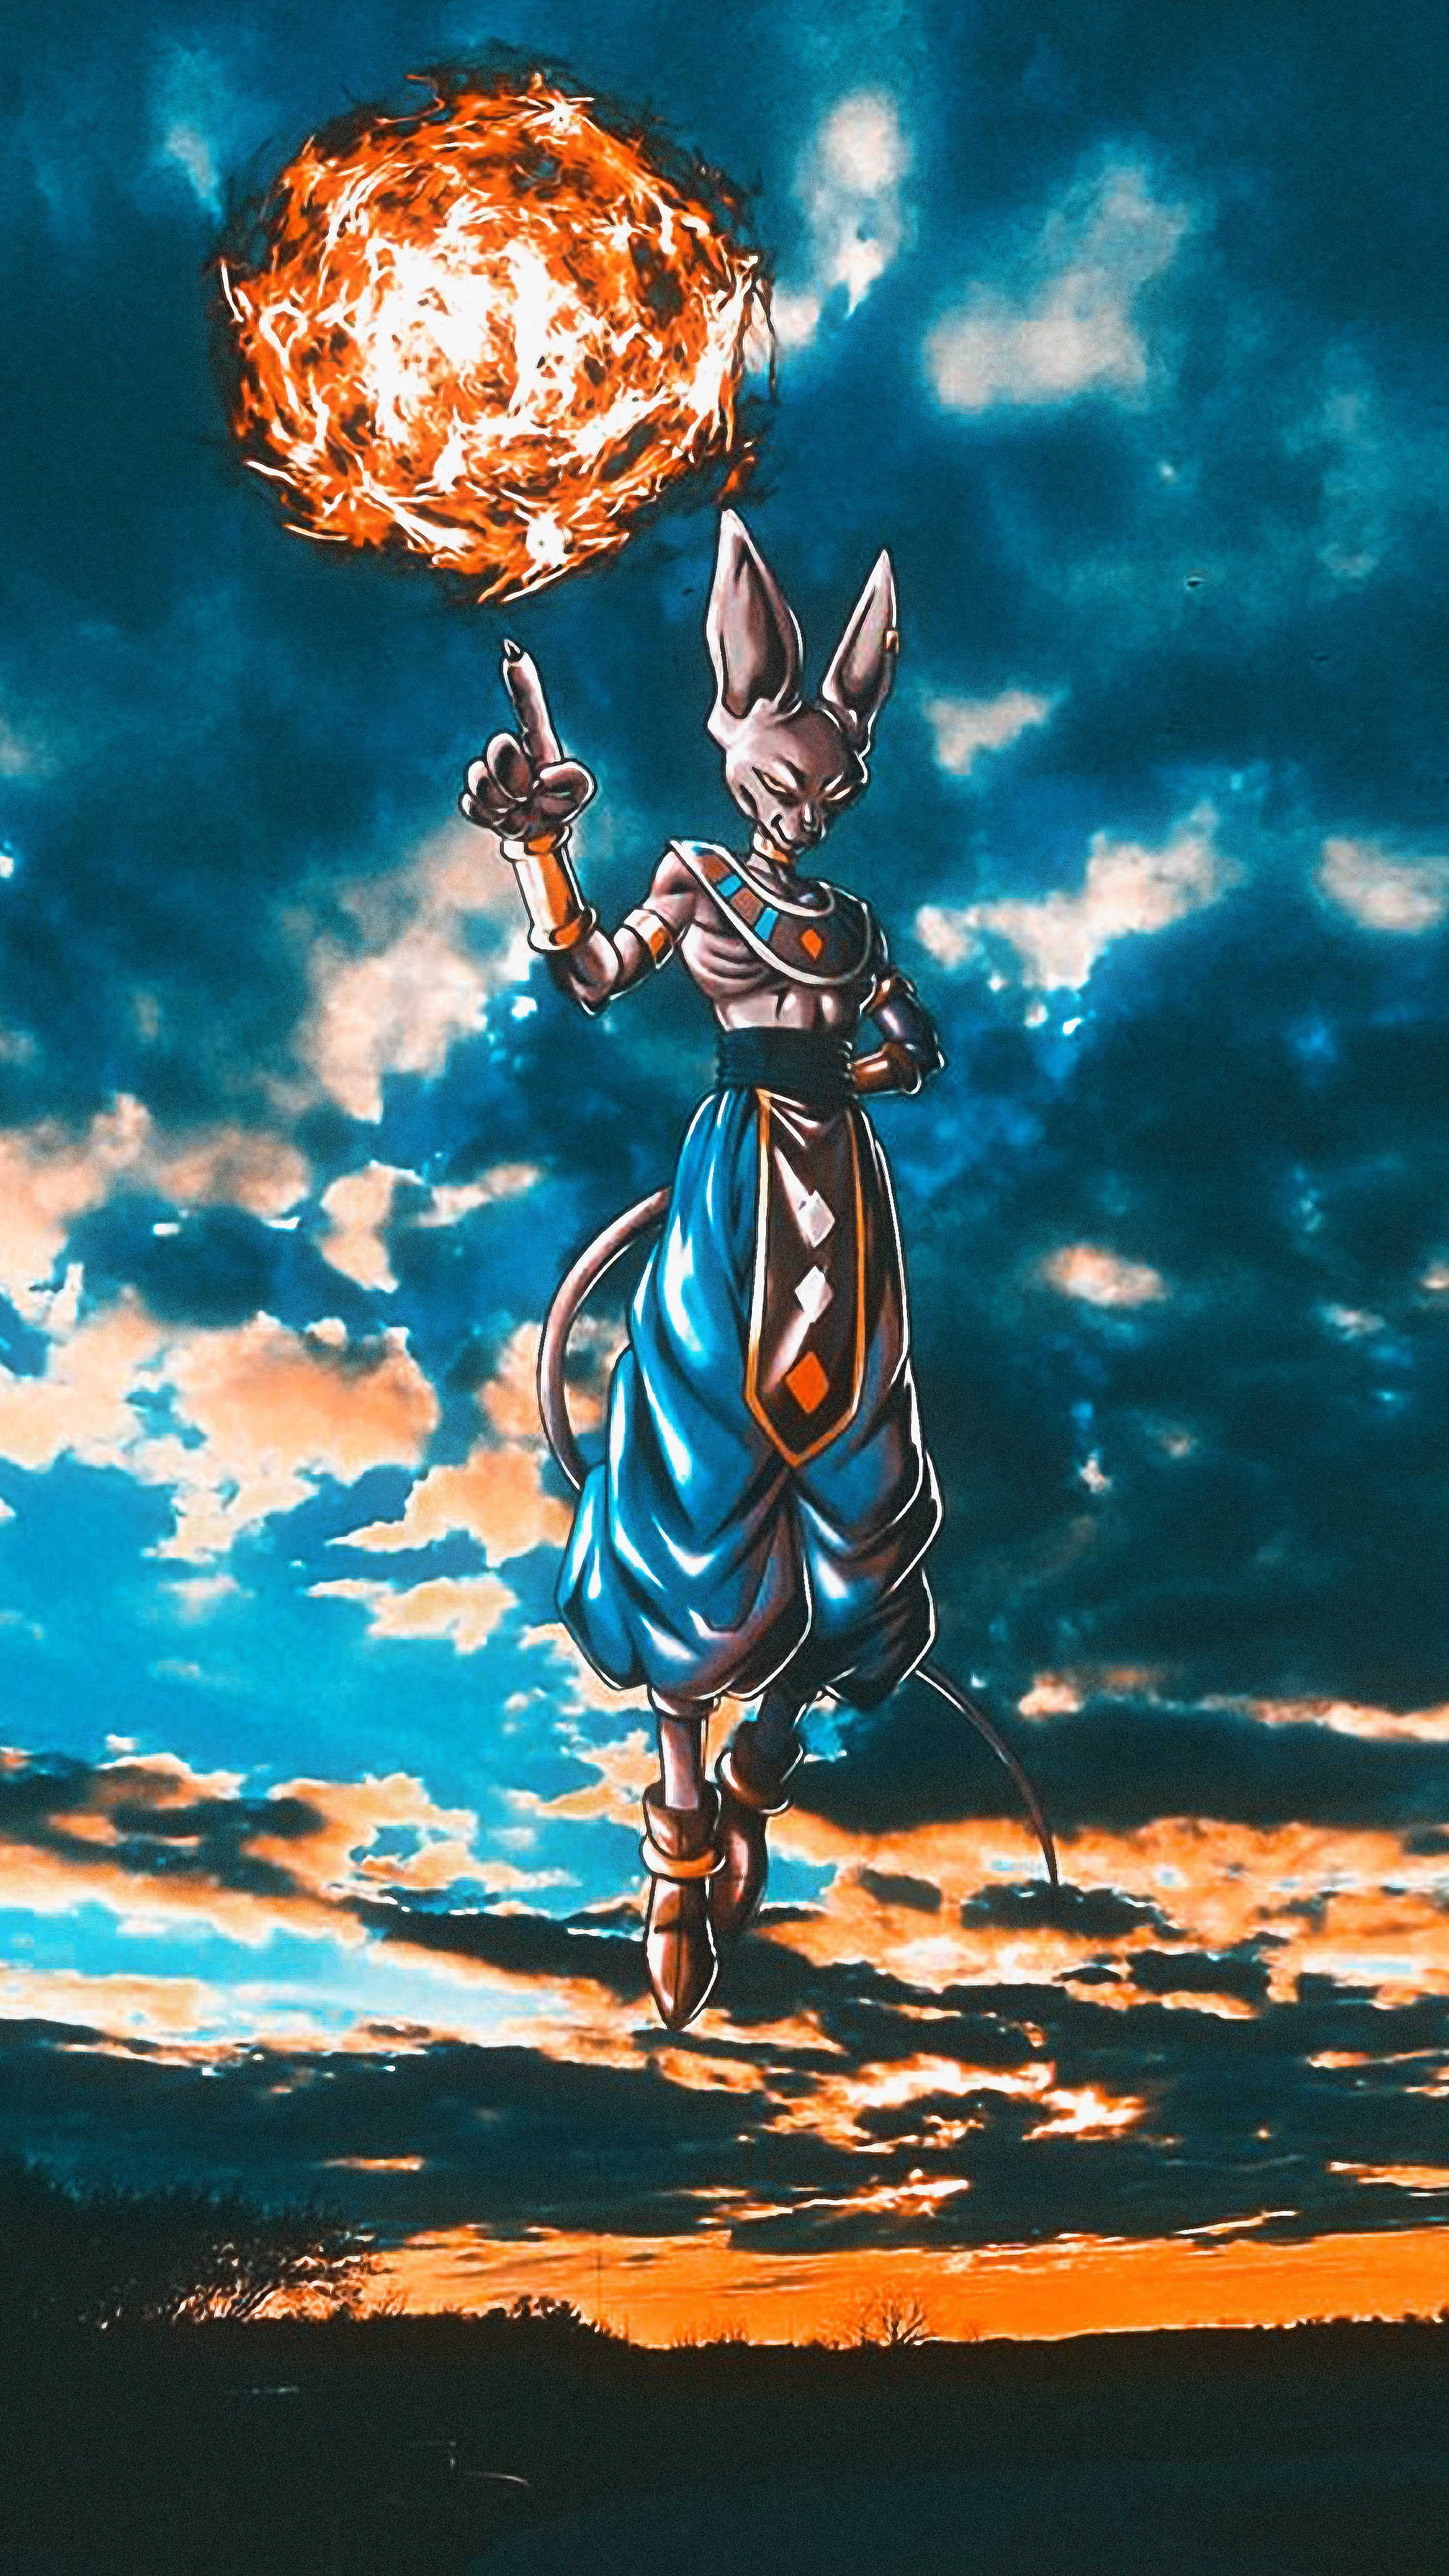 Free download 20 4K Wallpapers of DBZ and Super for Phones SyanArt Station 2160x3840 for your ...